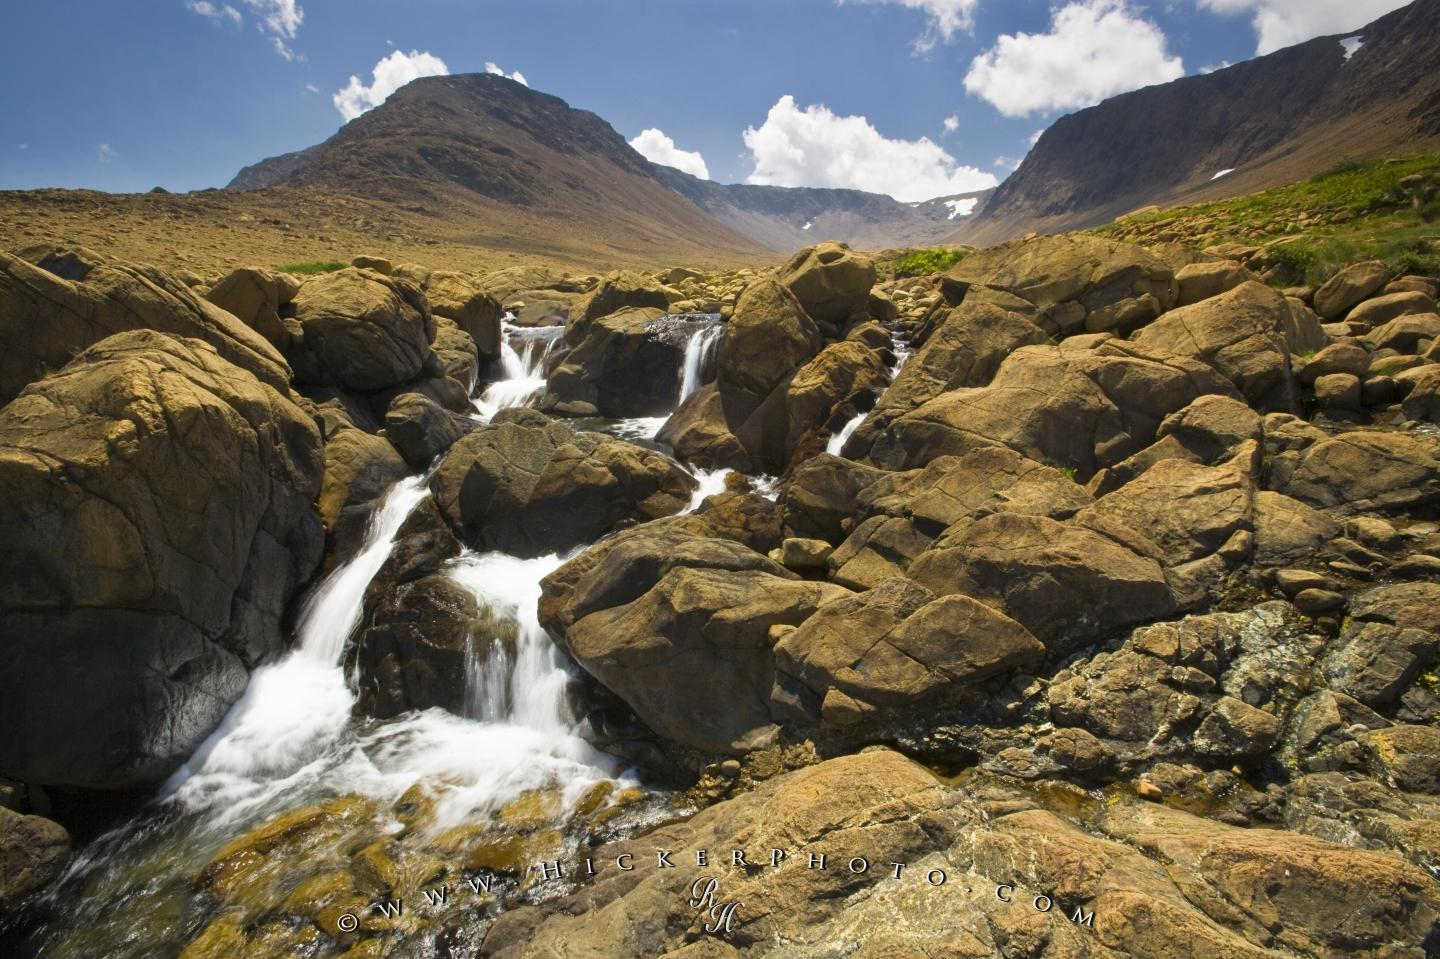 wallpaper background Geological Features Tablelands Gros 1440x959